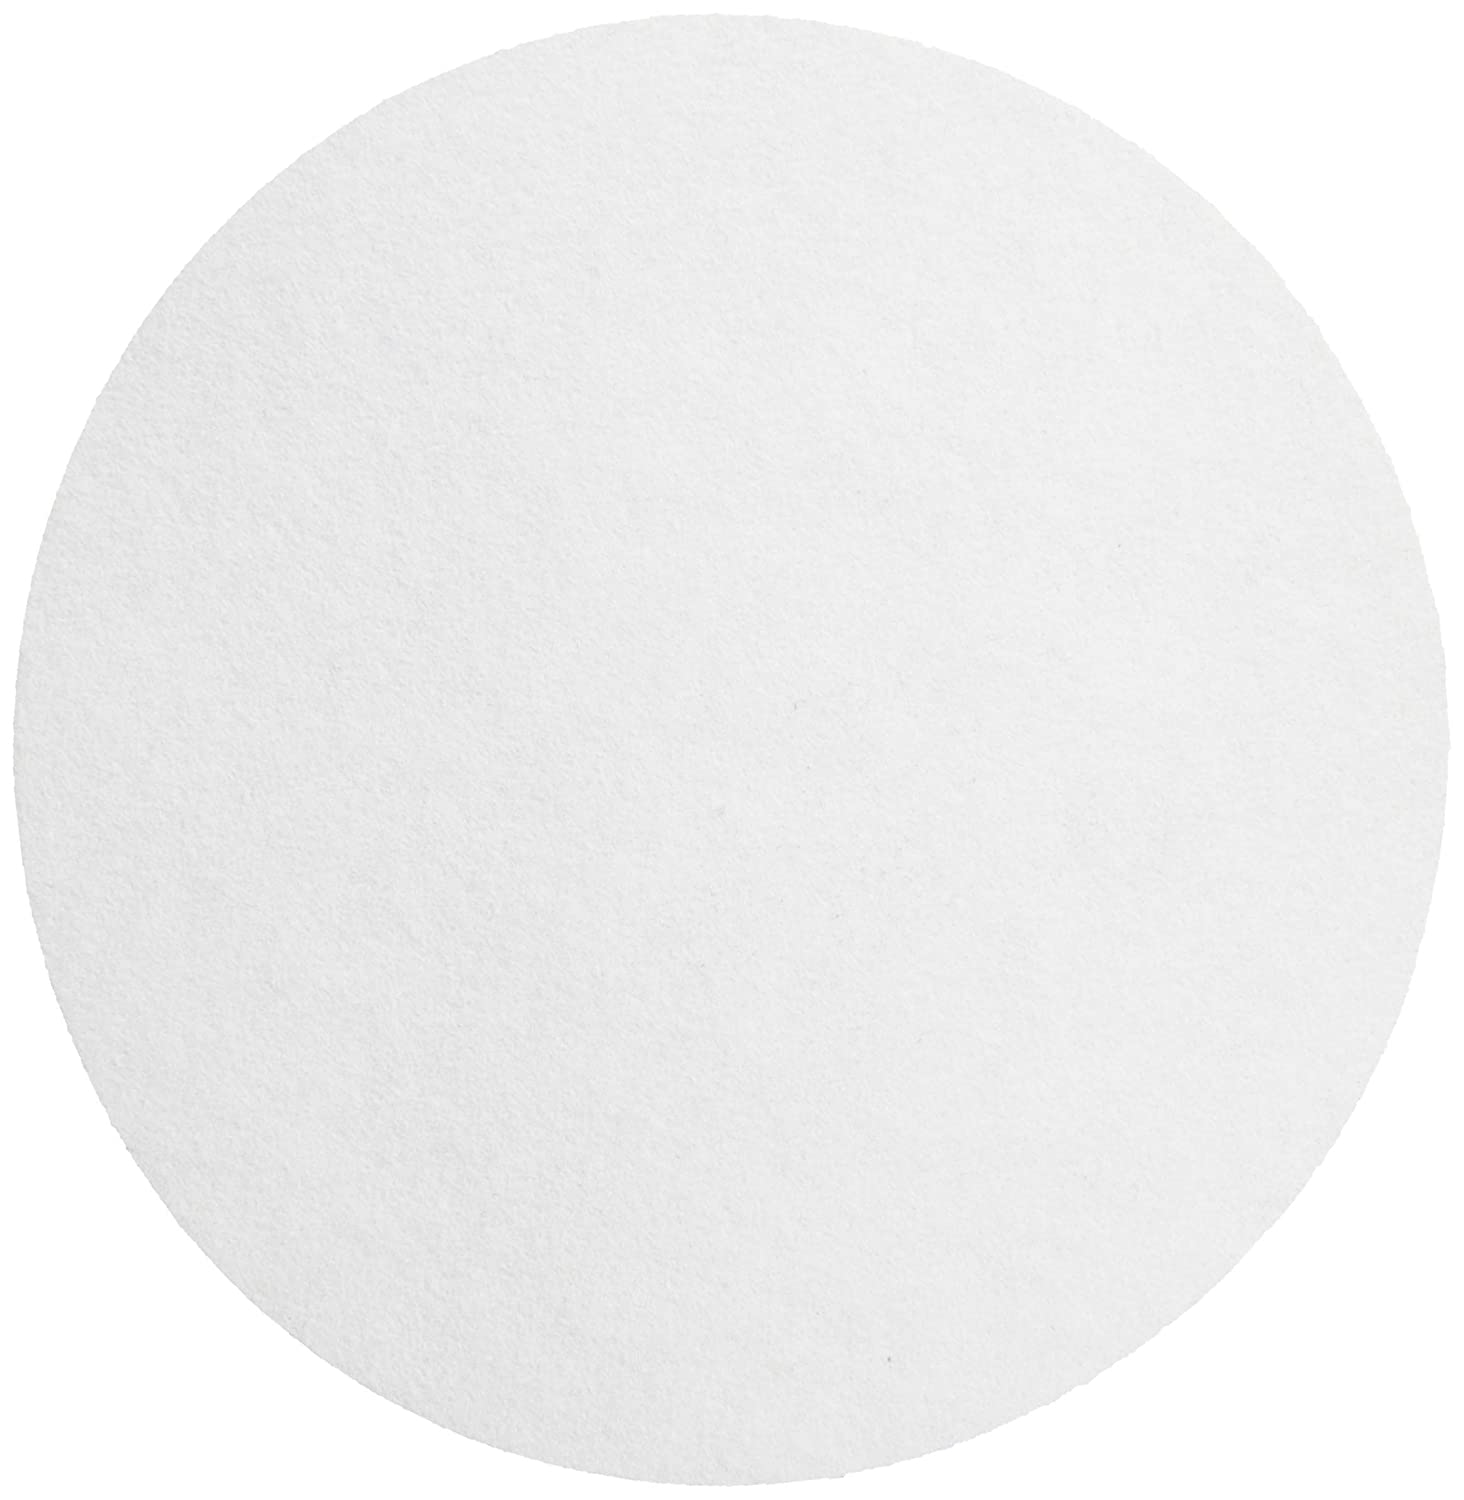 Grade 44 Pack of 100 3 Micron Whatman 1444-110 Ashless Quantitative Filter Paper 11.0cm Diameter